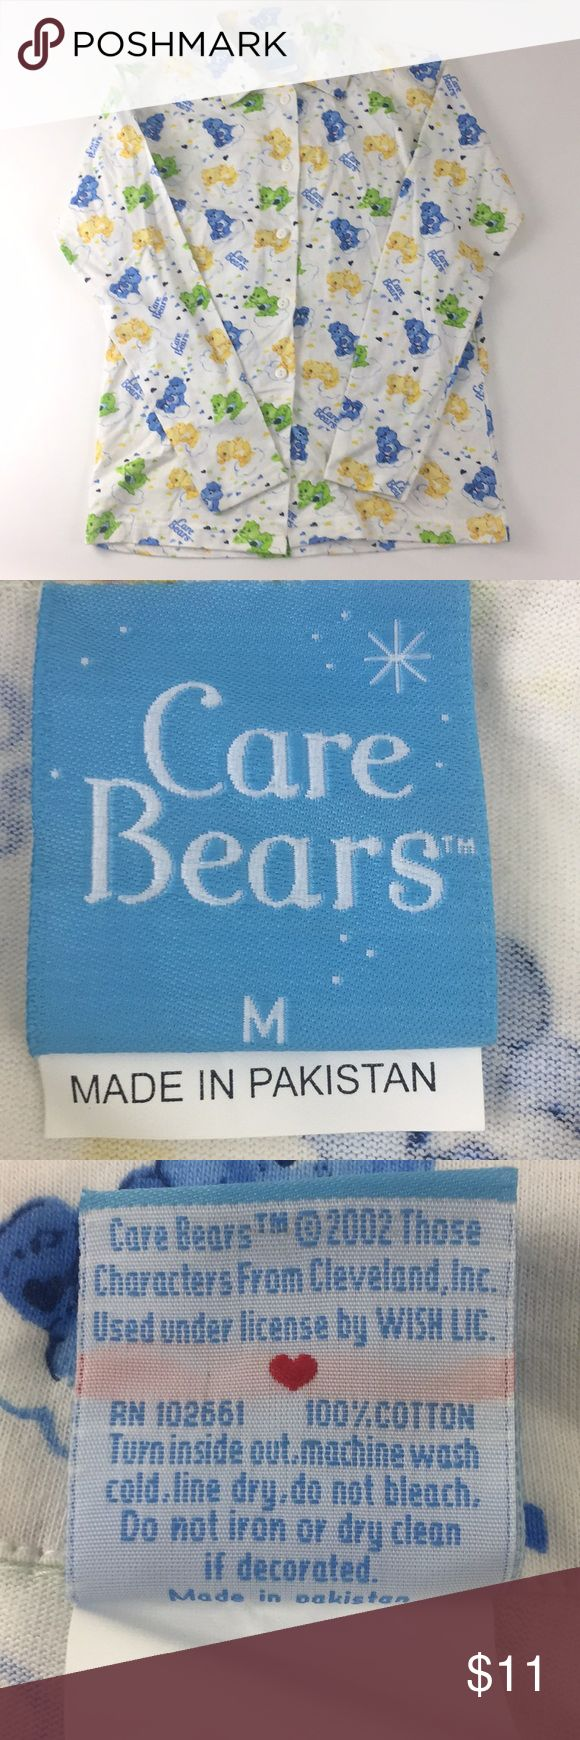 """Care Bears Pajama Shirt.   H8 New without tags. Care Bears Pajama Shirt. Women's Size medium. Collared, Button front long sleeve Pajama shirt. 100% cotton. Measurements are approximate. Bust: 38"""", length: 27"""", sleeve: 23"""". Care Bears Intimates & Sleepwear Pajamas"""